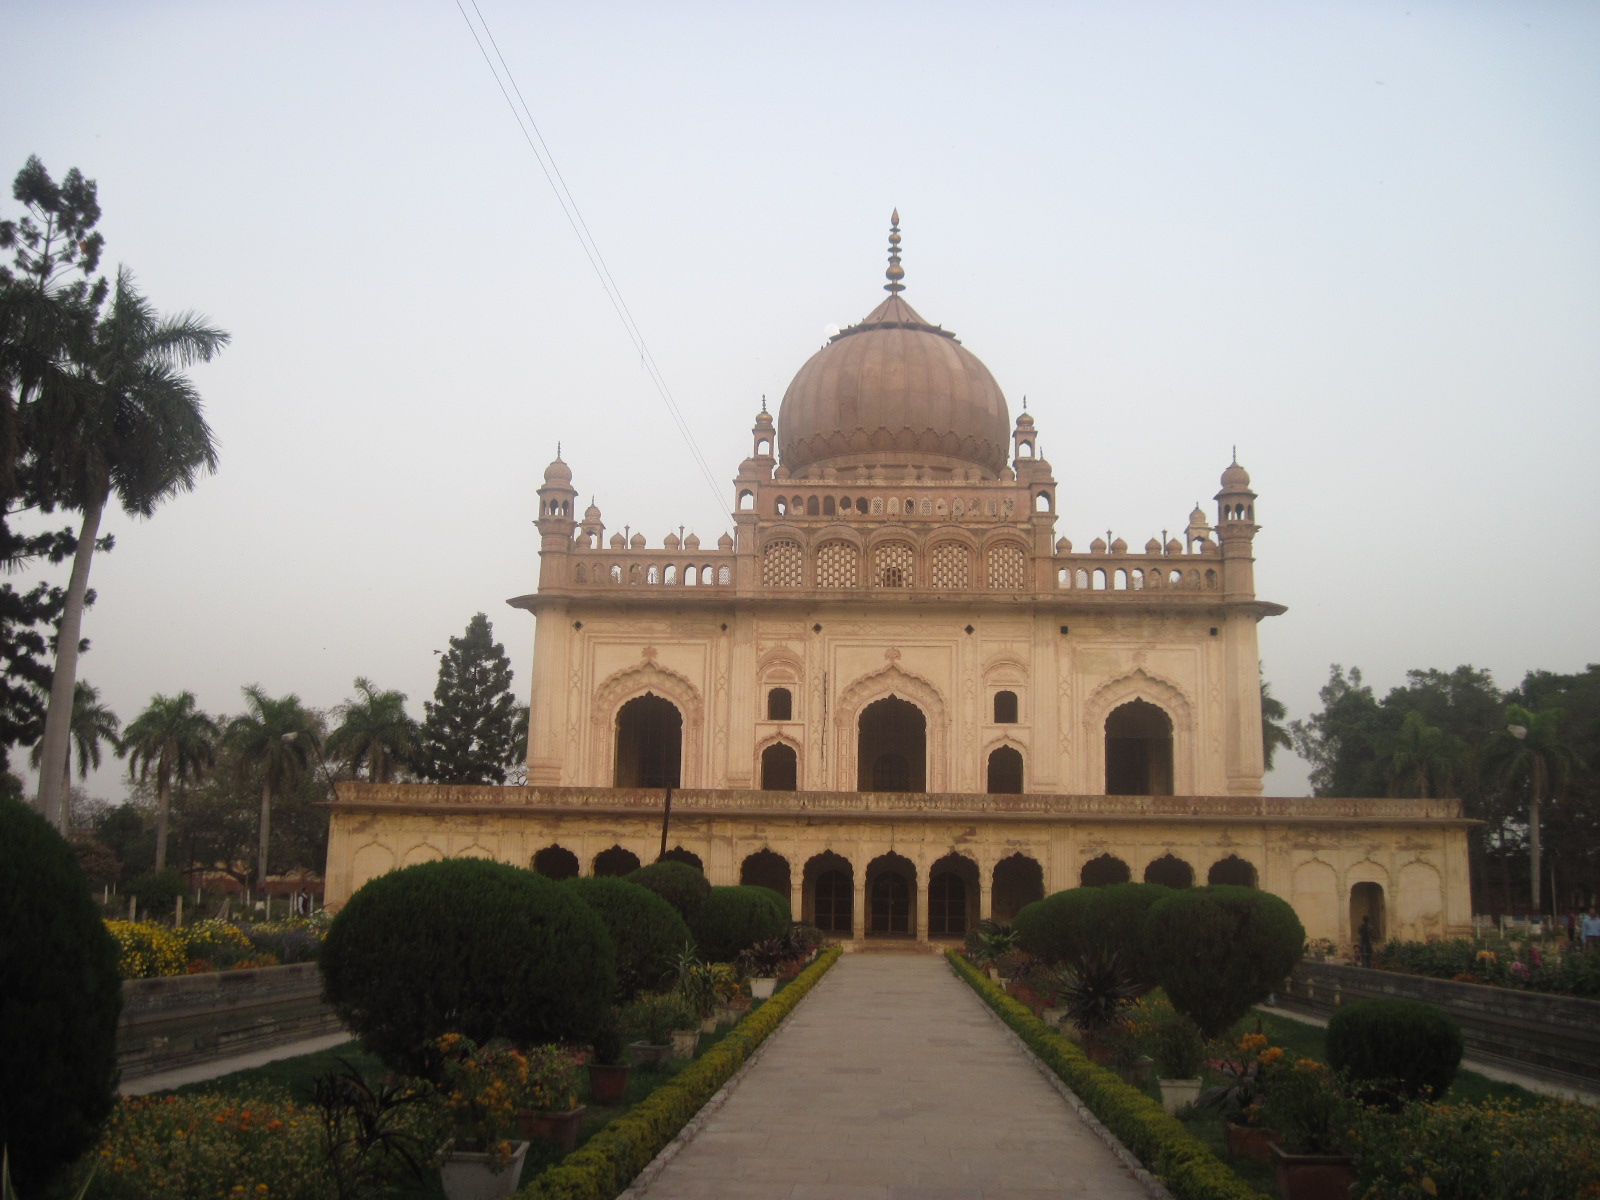 Perfect Attraction to Visit On The Banks of River Saryu - Gulab Bari